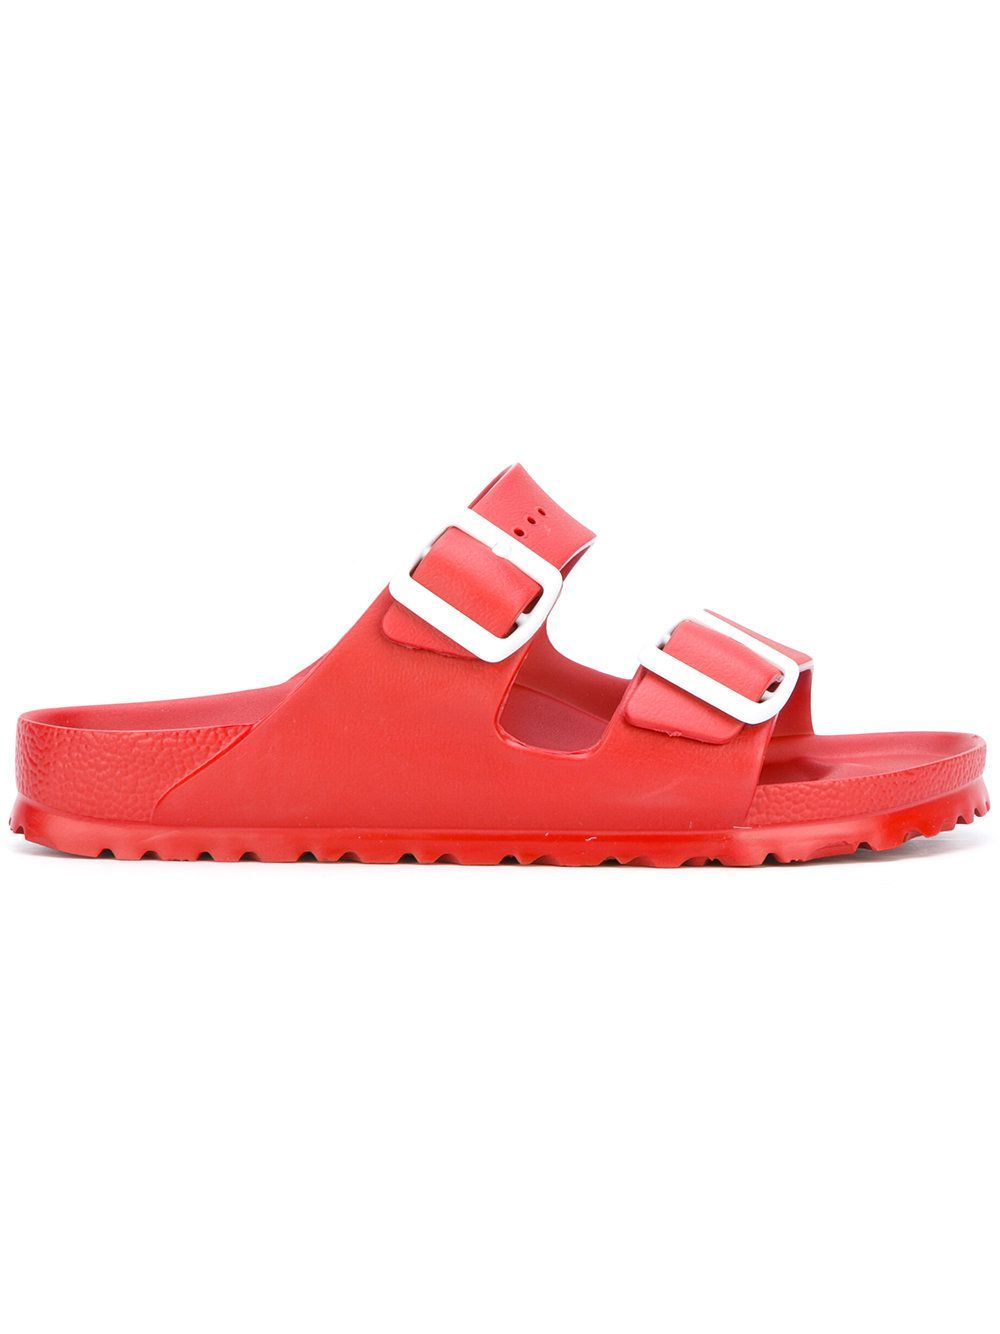 f7d73c6a8eef 21 Comfortable (and Chic) Flat Sandals You ll Live in This Summer  Sliding  into summer like... Birkenstock farfetch.com  41.44